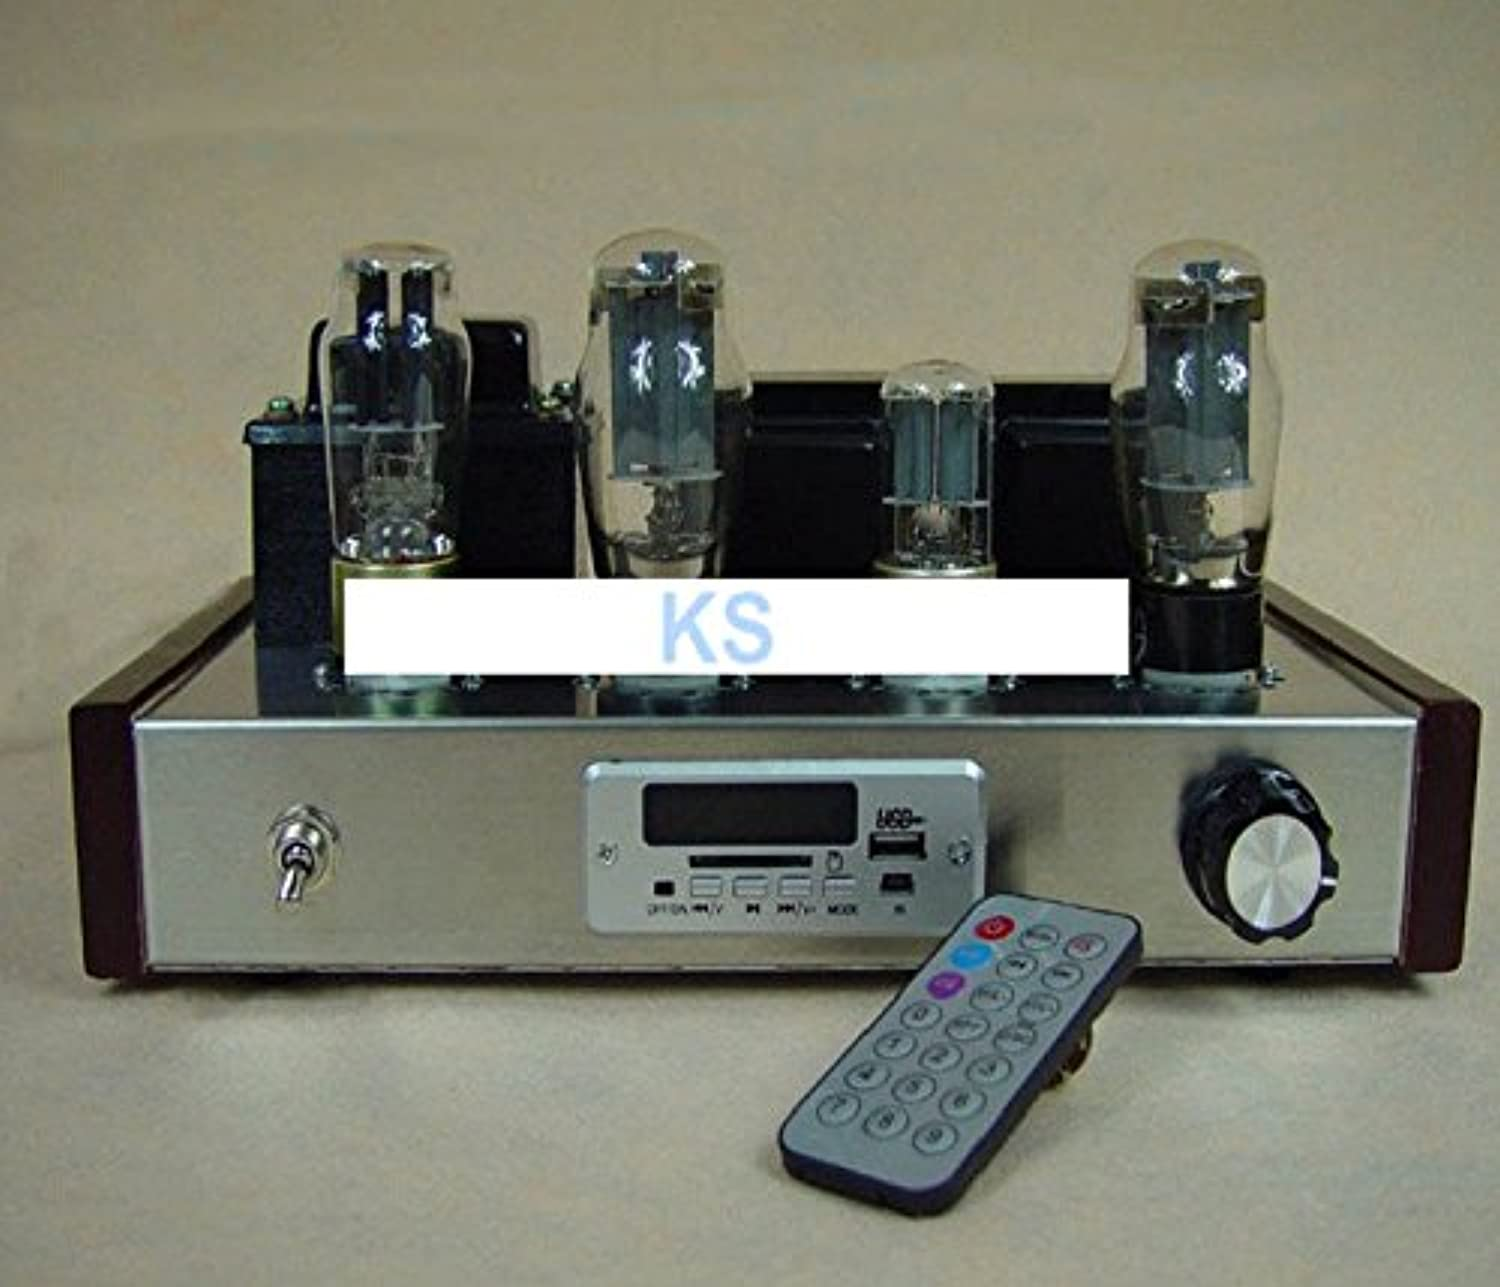 KOHSTAR HIFI EXQUIS manufacturer 6N9P 6P3P tube amps with USB MP3 decoder singleended 7w vacuum tube amplifier finished product